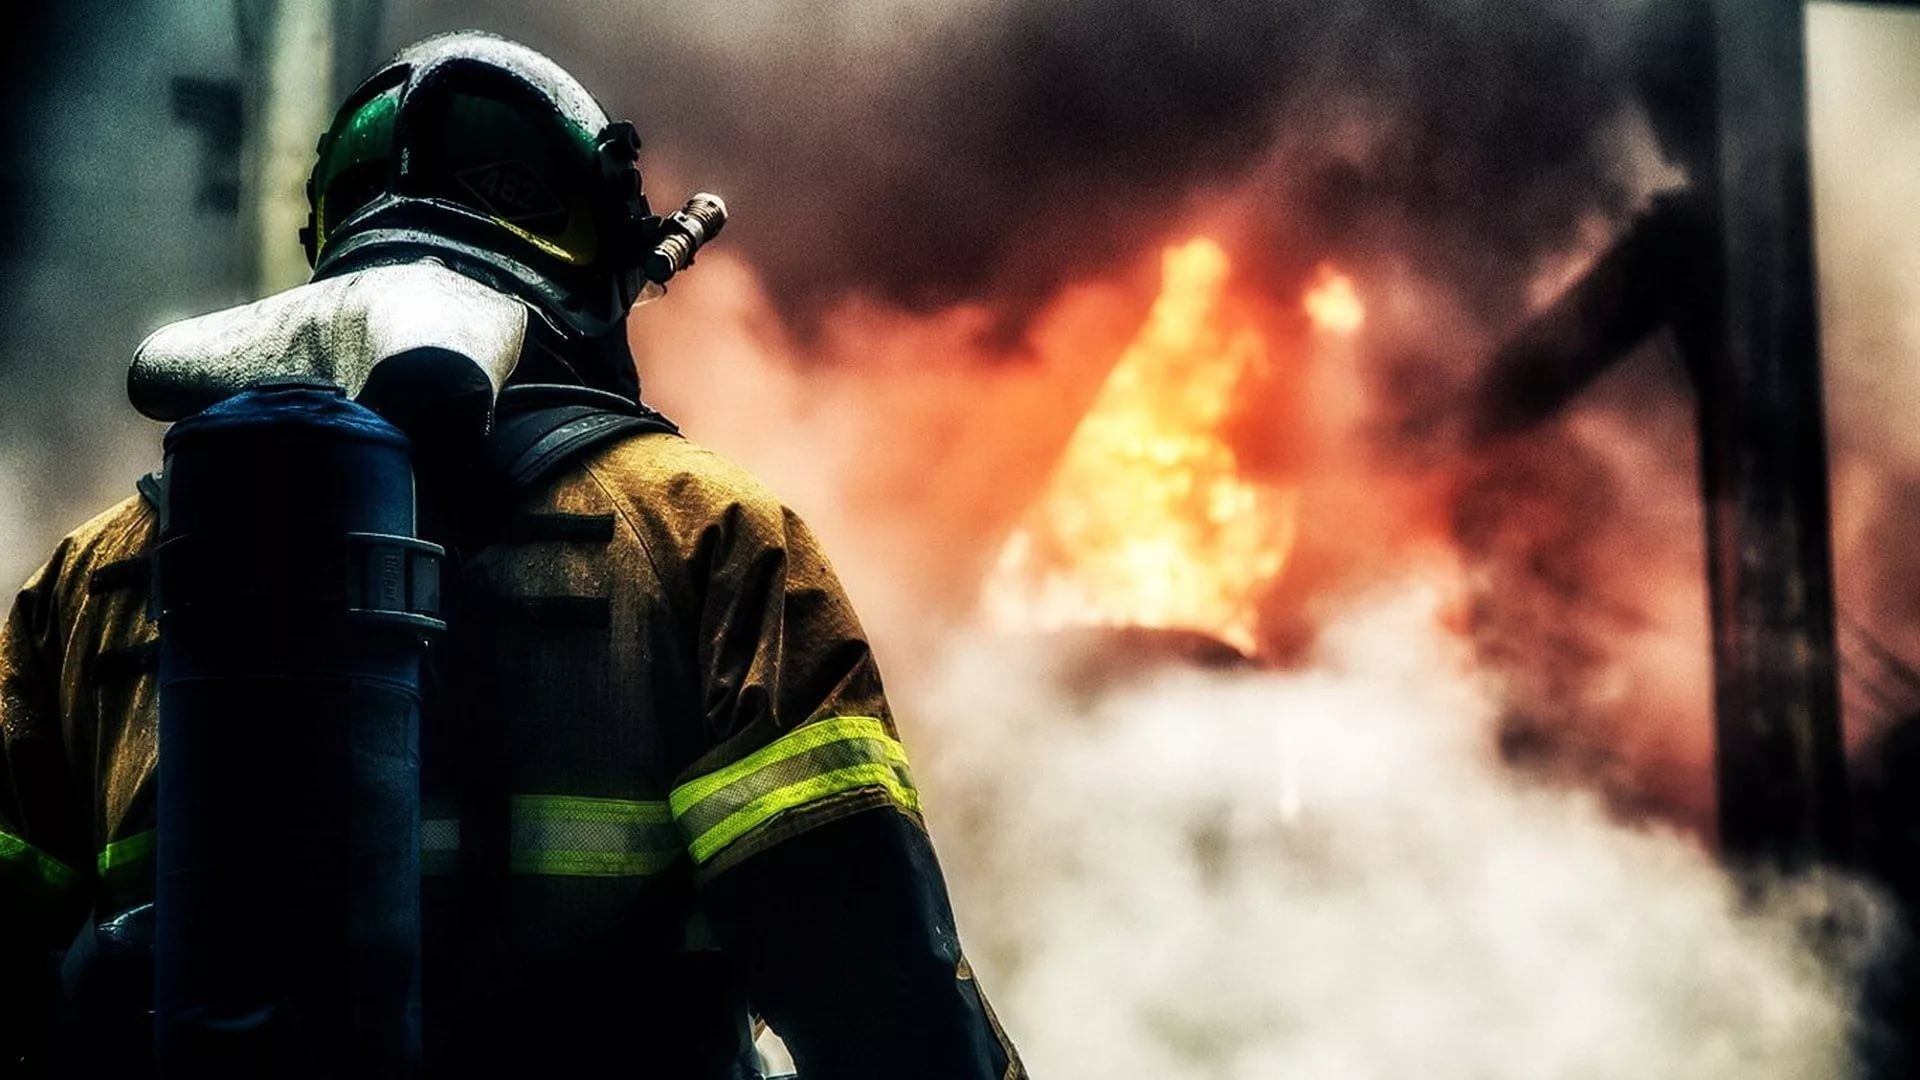 Firefighter High Quality